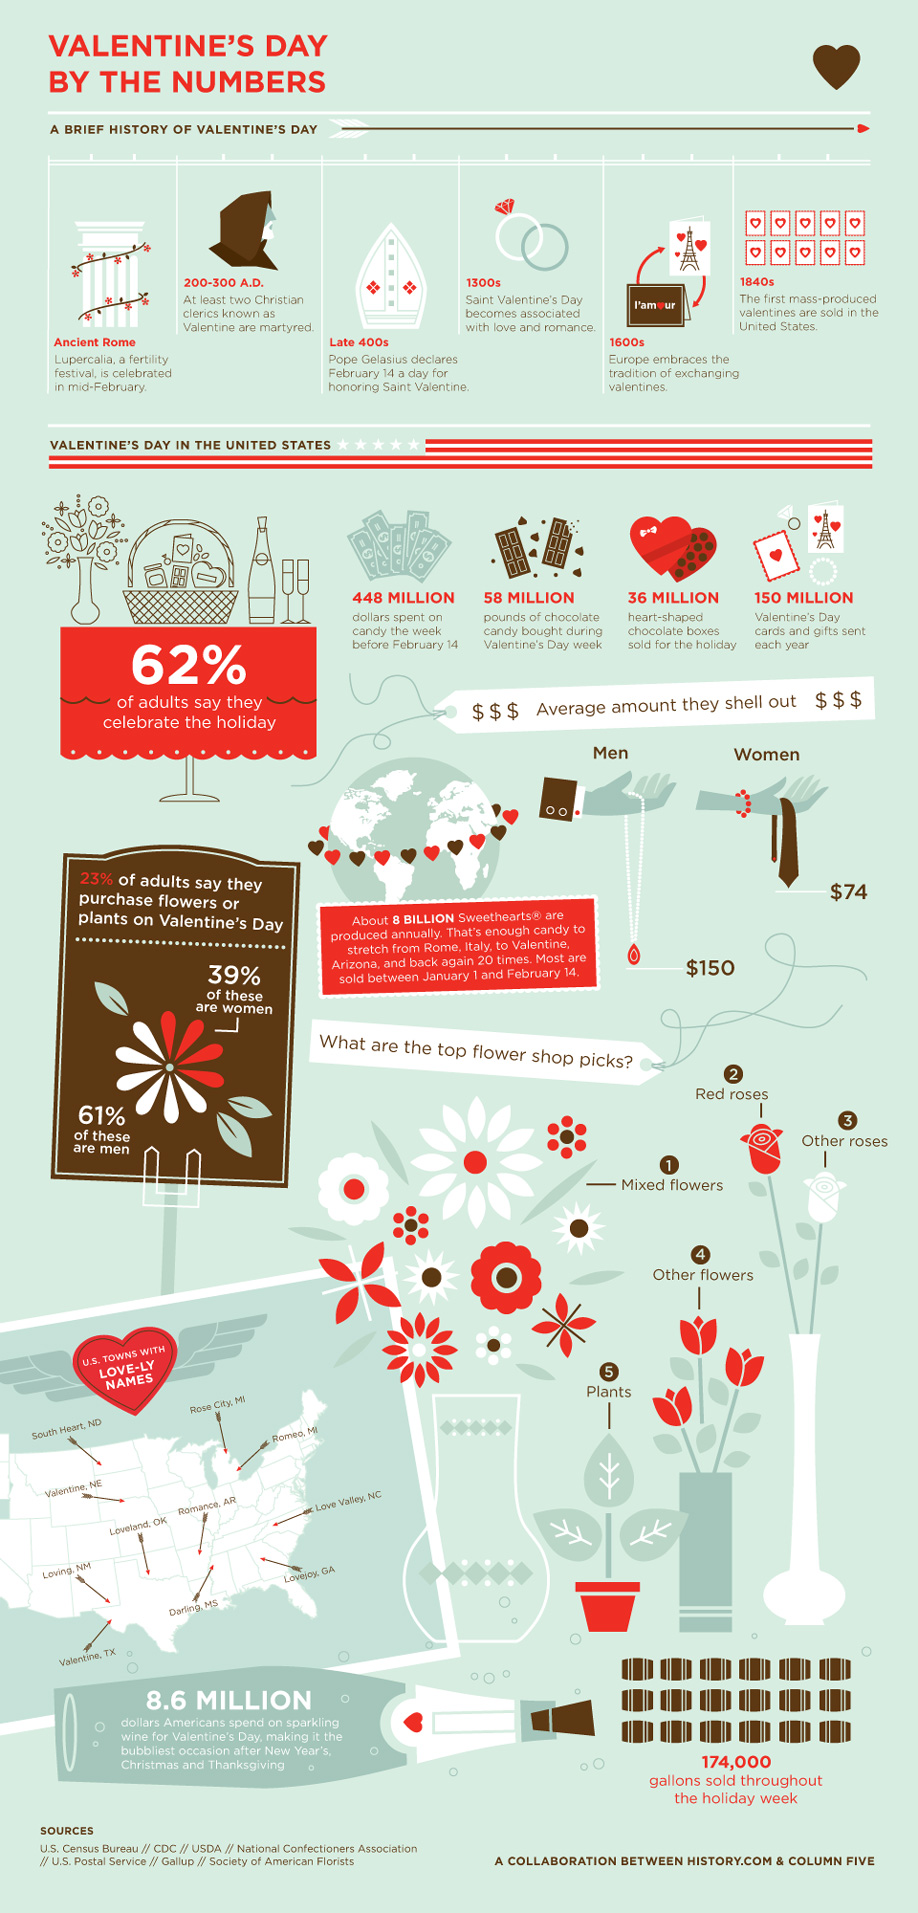 history-infographic-valentines-day-by-the-numbers